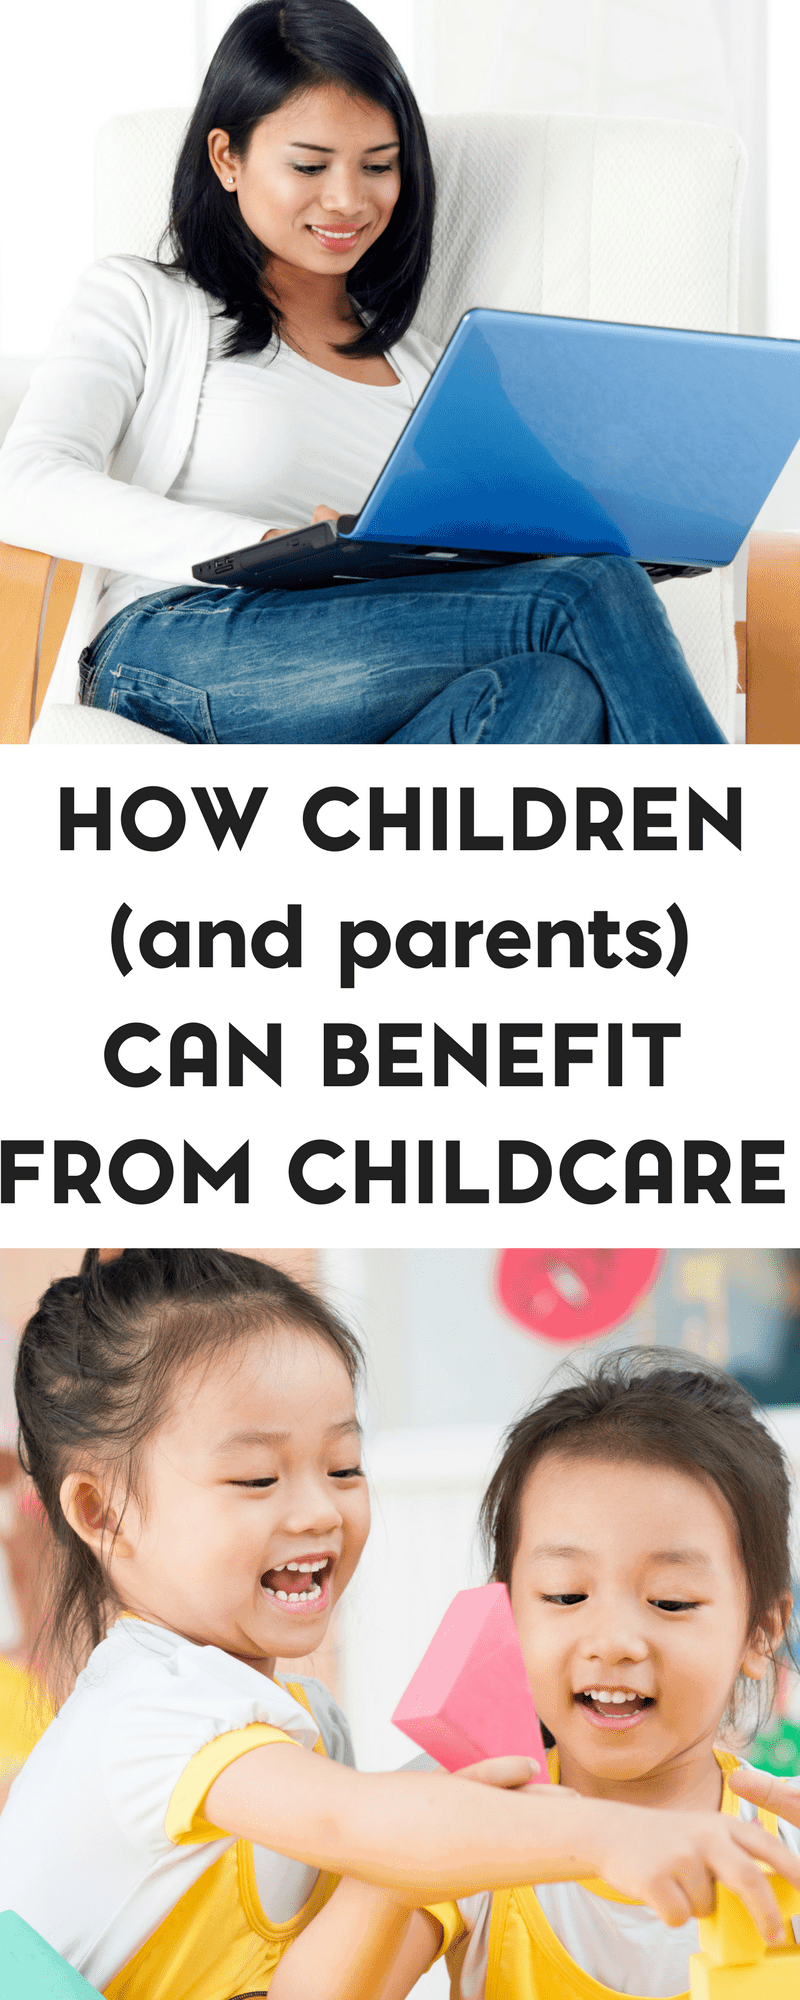 Childcare can be beneficial for both children and parents.